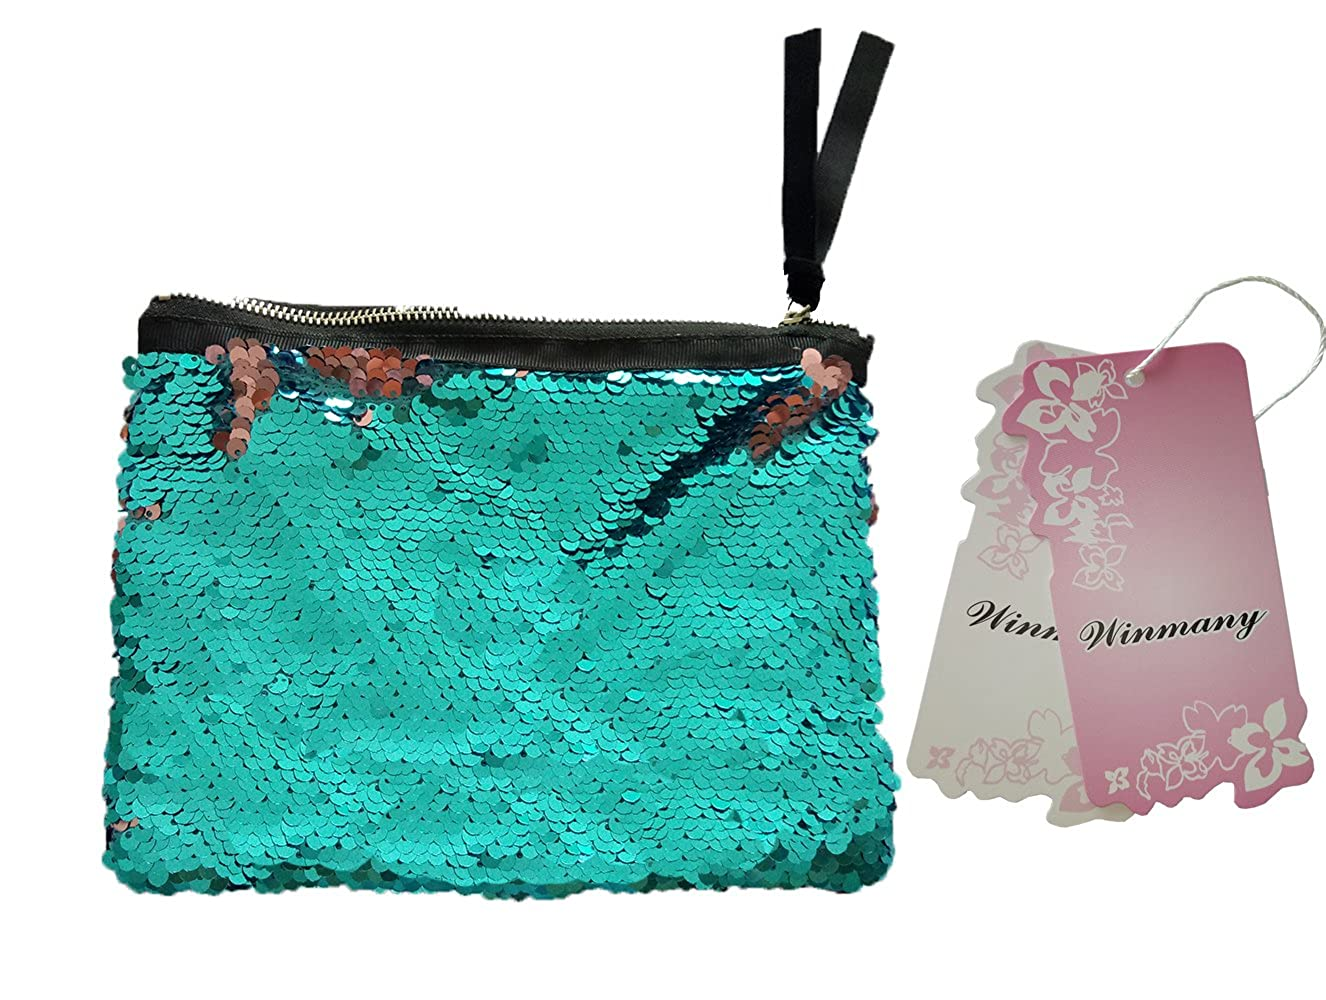 Pochette /à maquillage Winmany /à sequins r/éversibles brillants